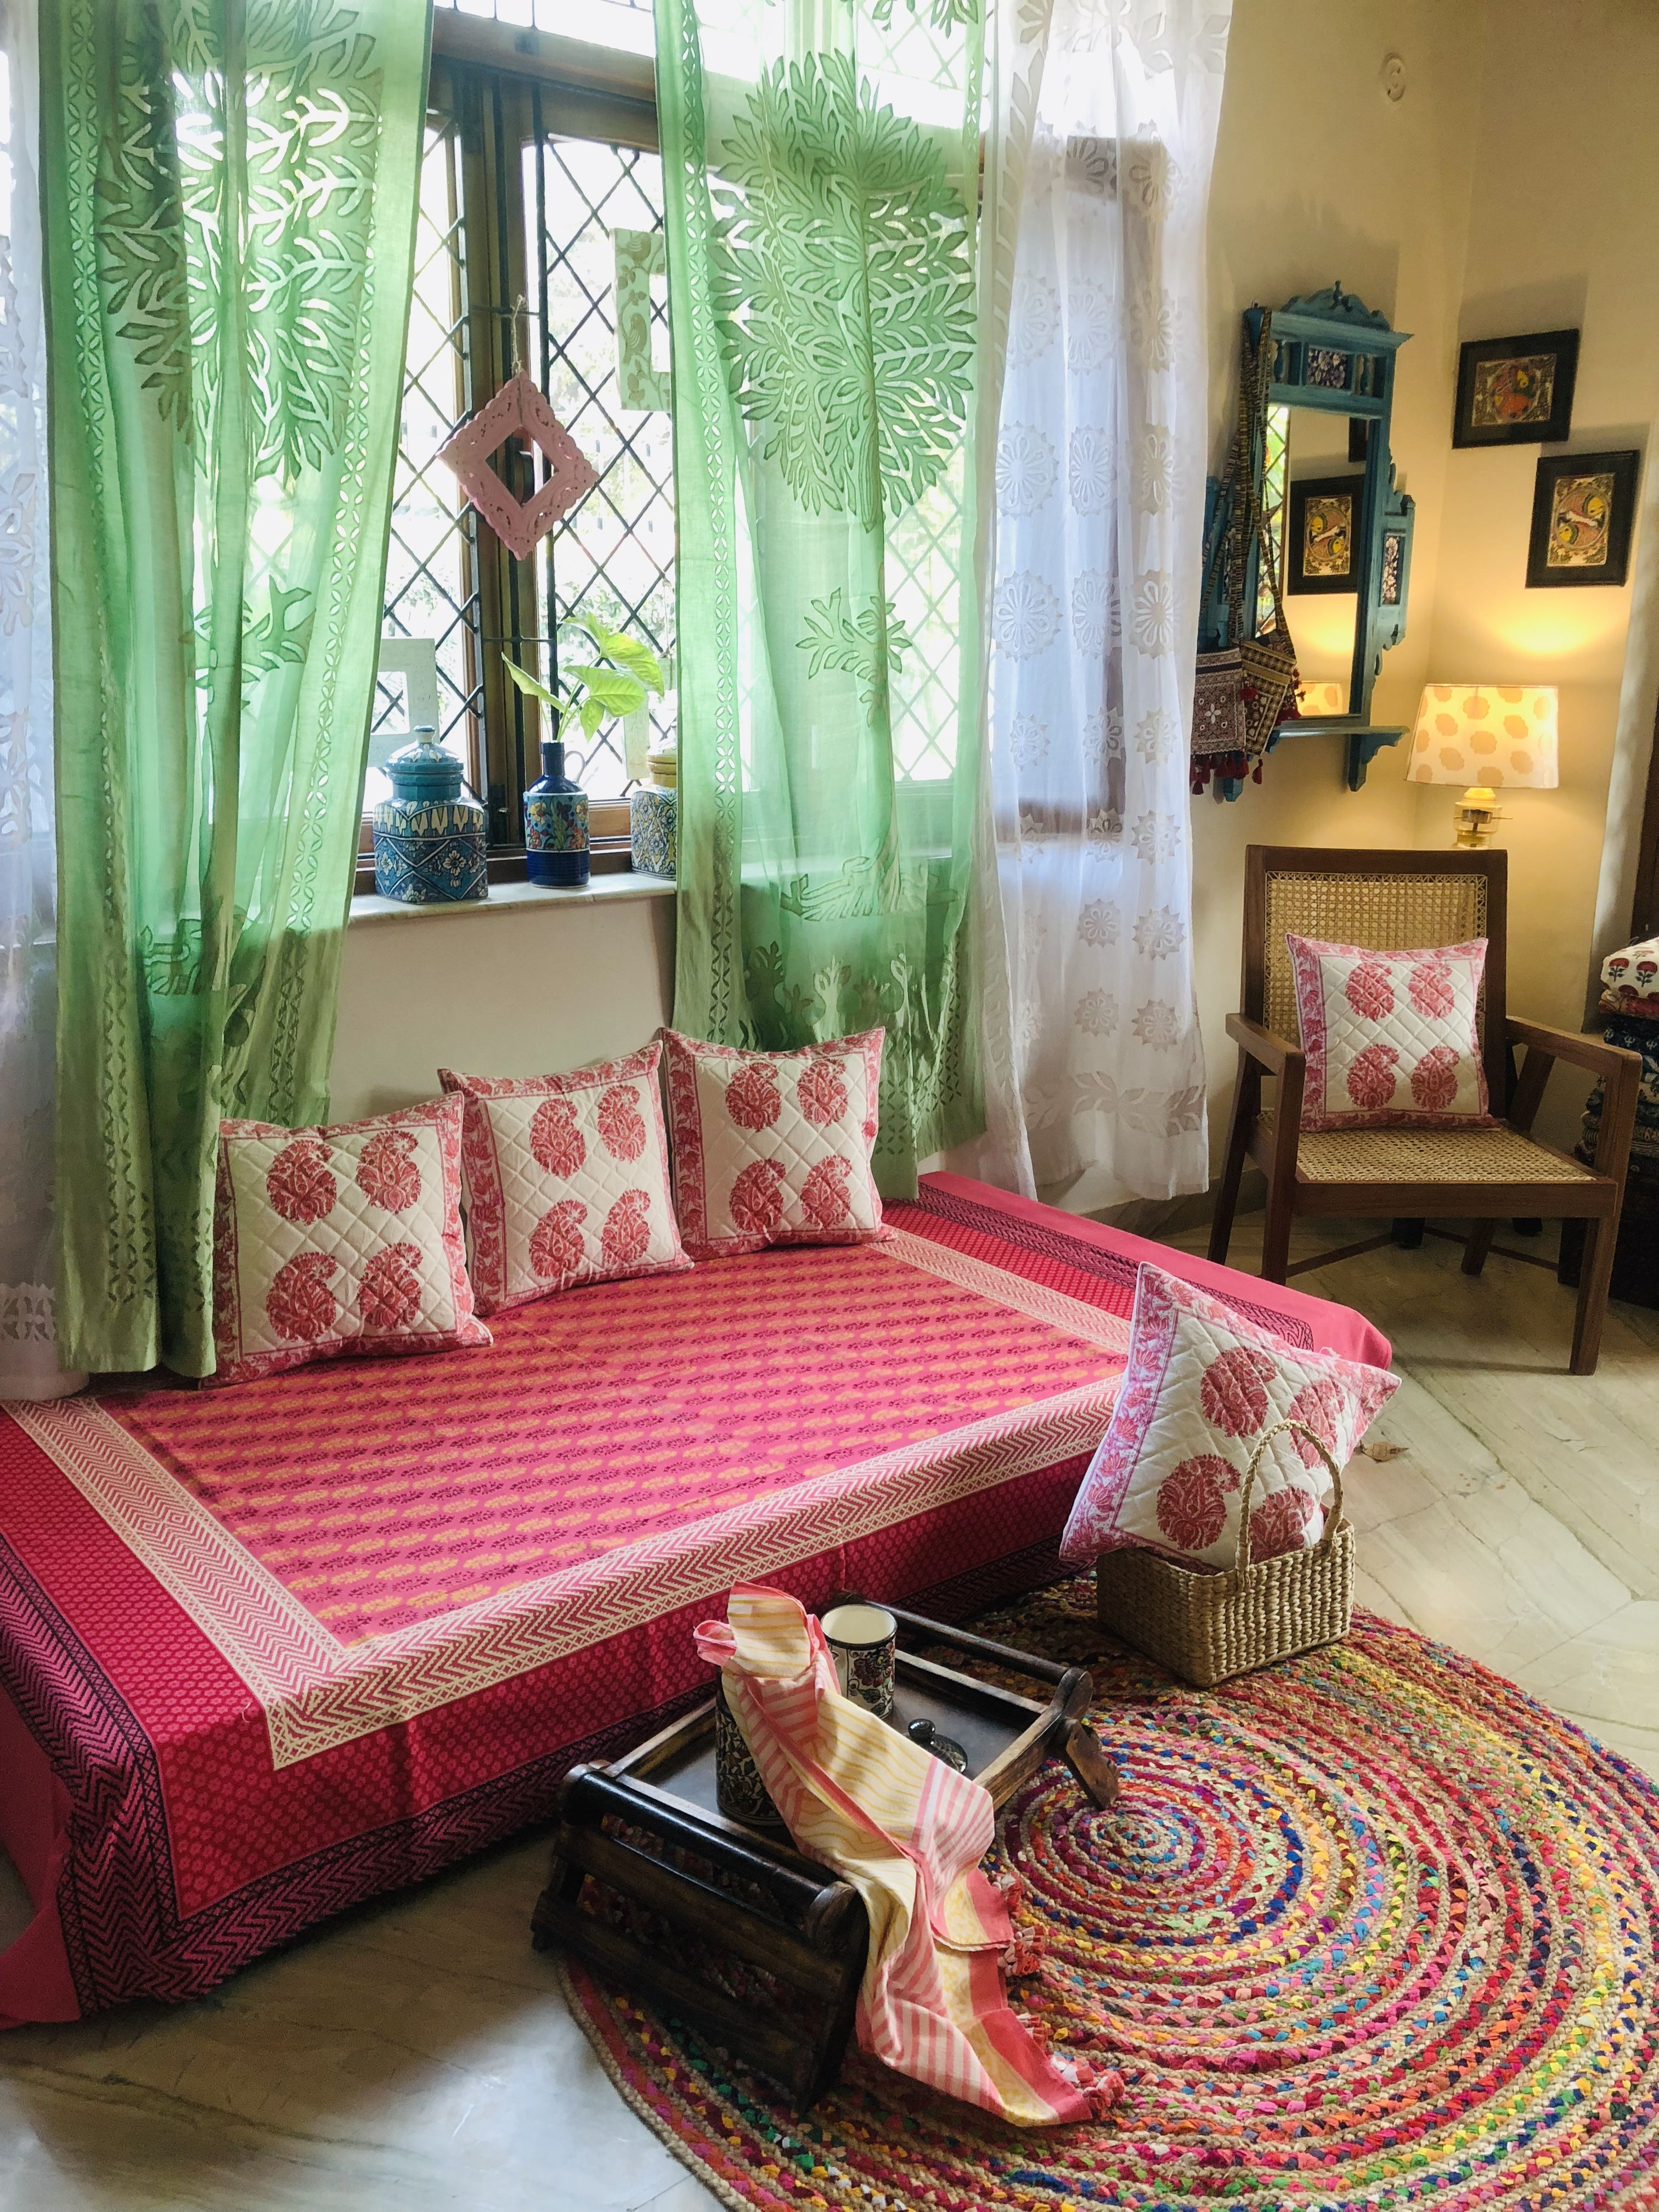 Pin By Farzana Akter On Home Interior With Images Comfortable